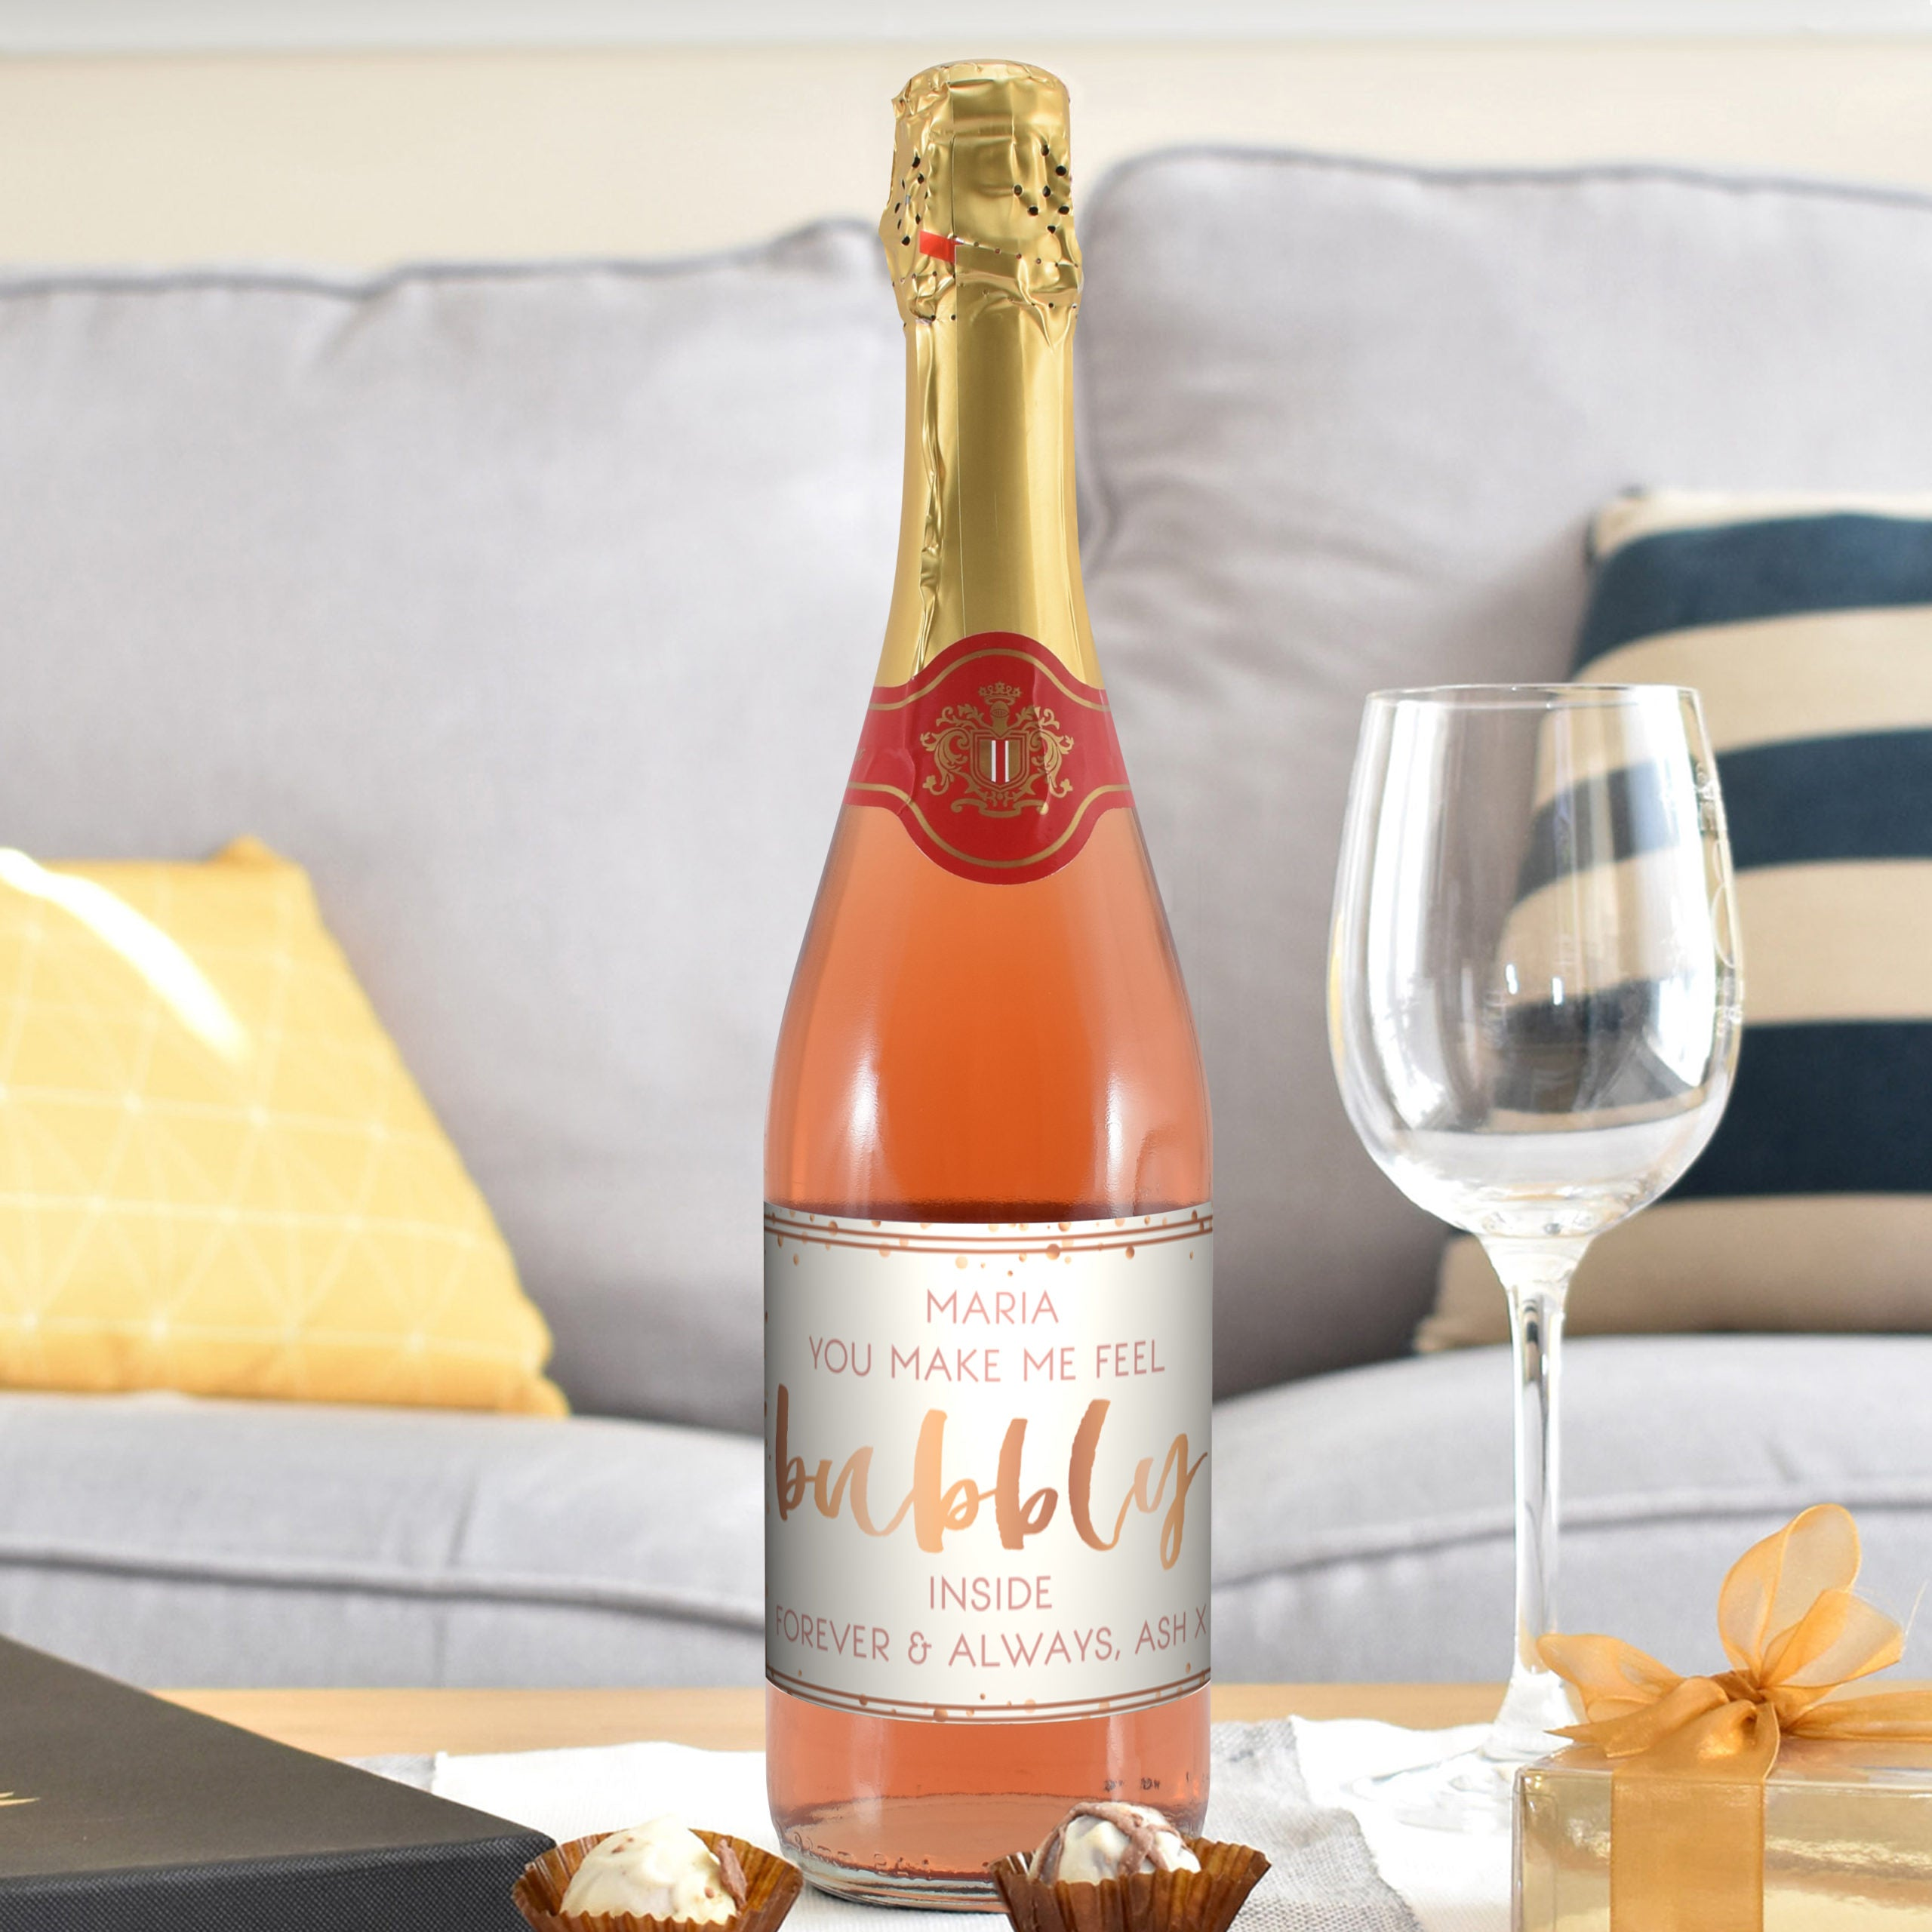 Personalised Bubbly Sparkling Rosé, Alcoholic Beverages by Gifts24-7